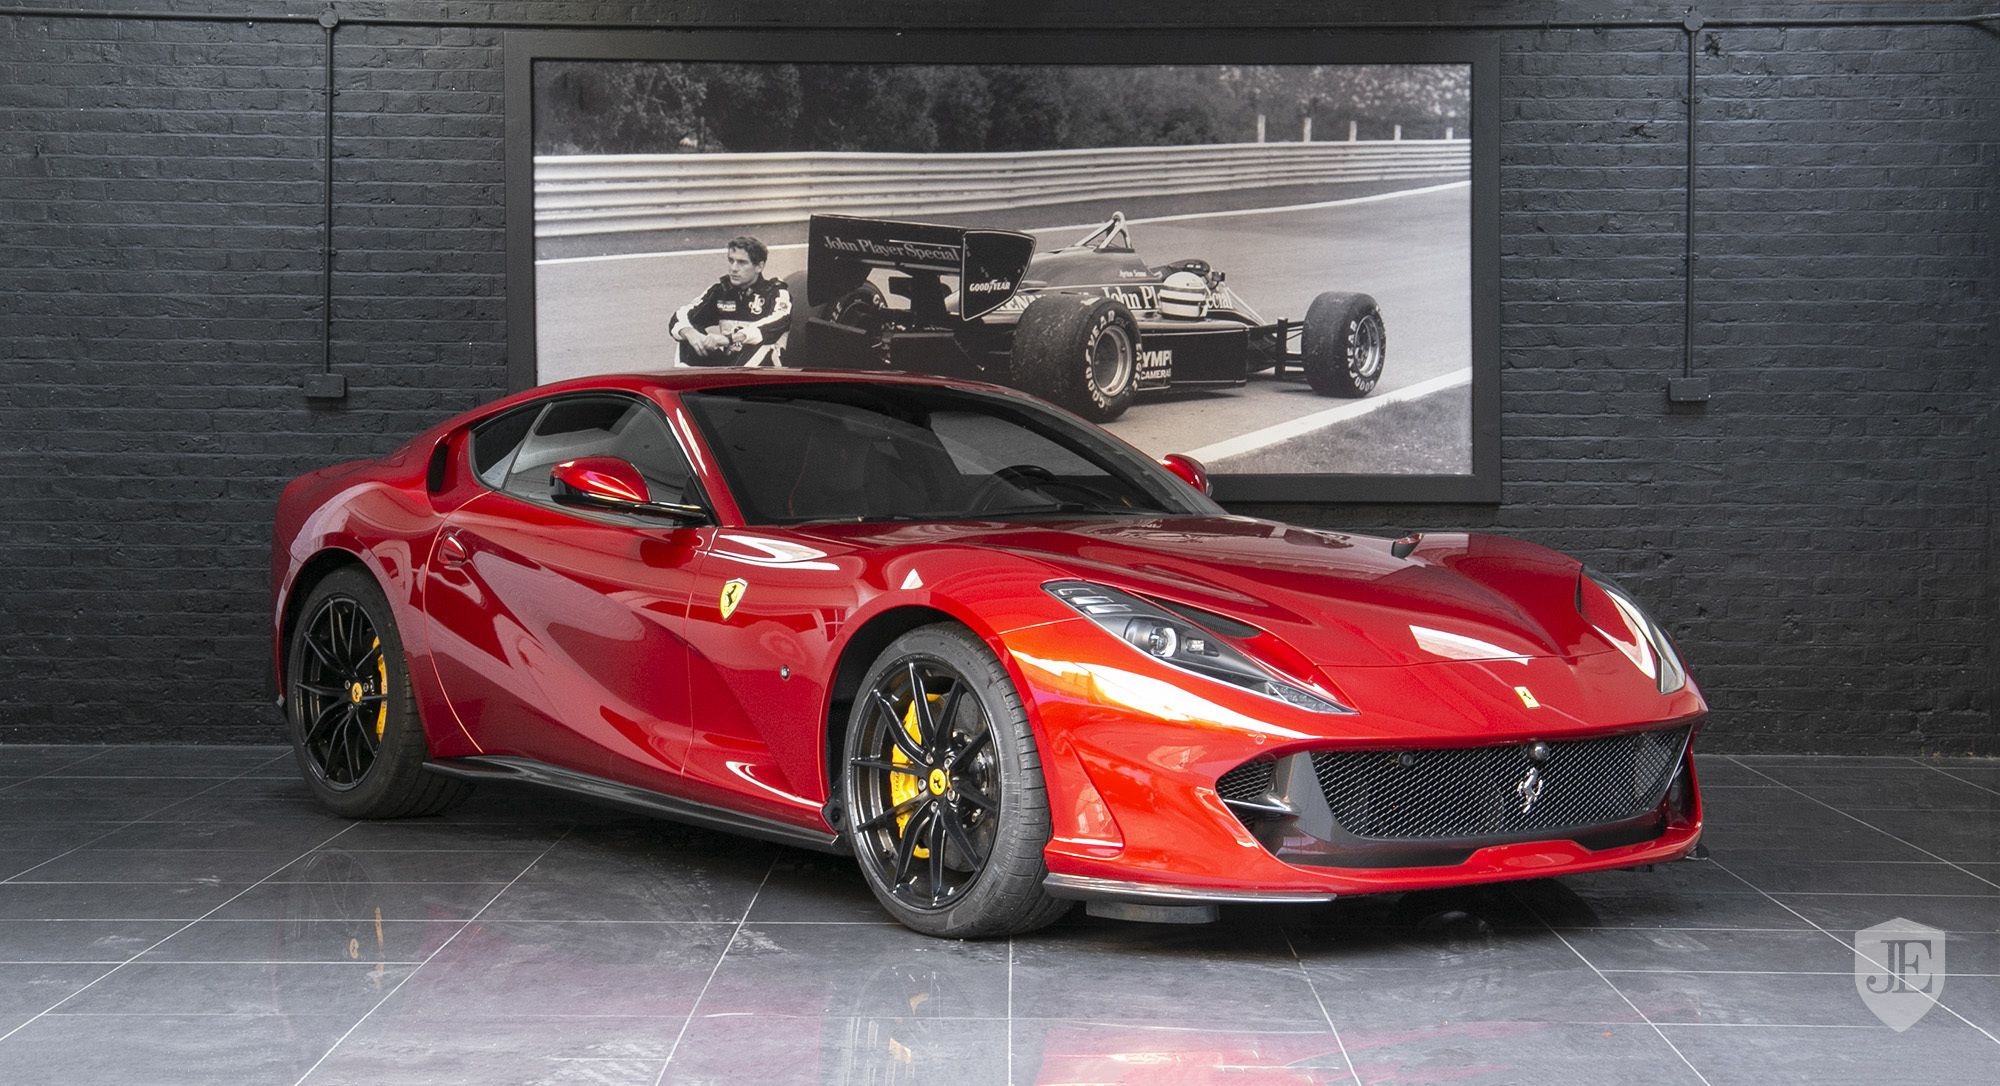 2018 Ferrari 812 Superfast In United Kingdom For Sale Ferrari Ferrari 488 Ferrari Car